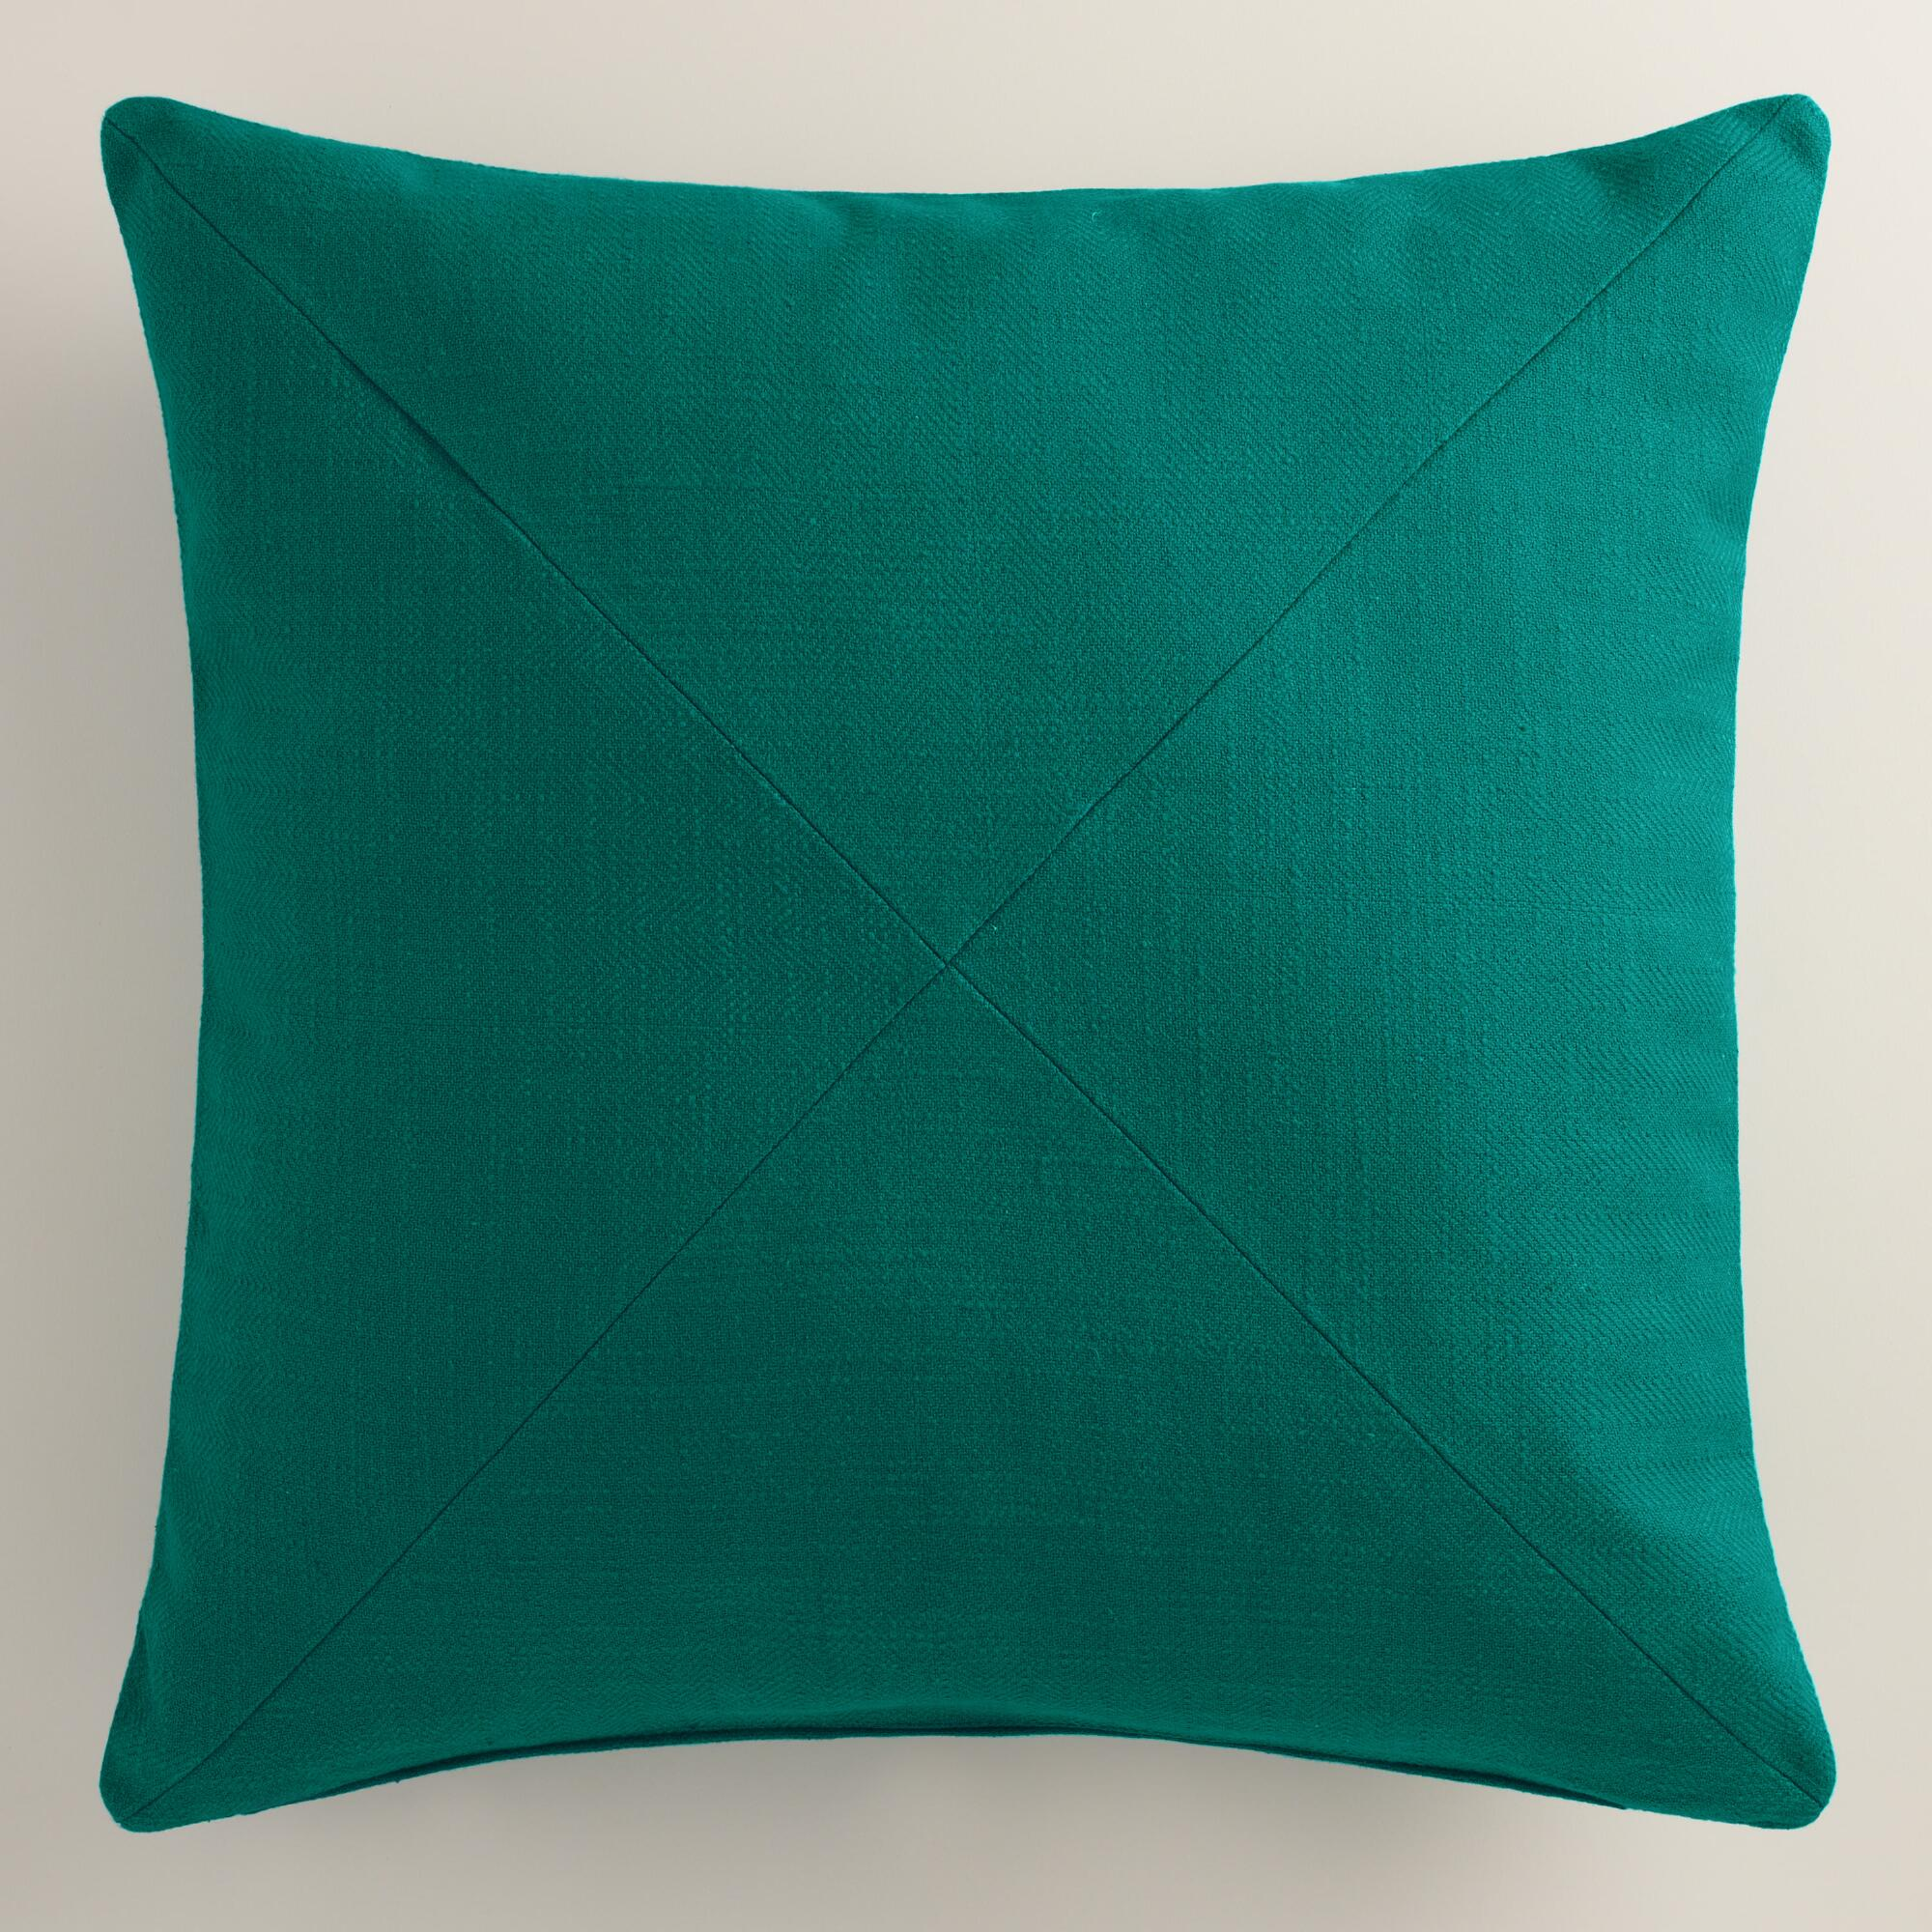 Decorative Pillows With Teal : Teal Herringbone Cotton Throw Pillow World Market